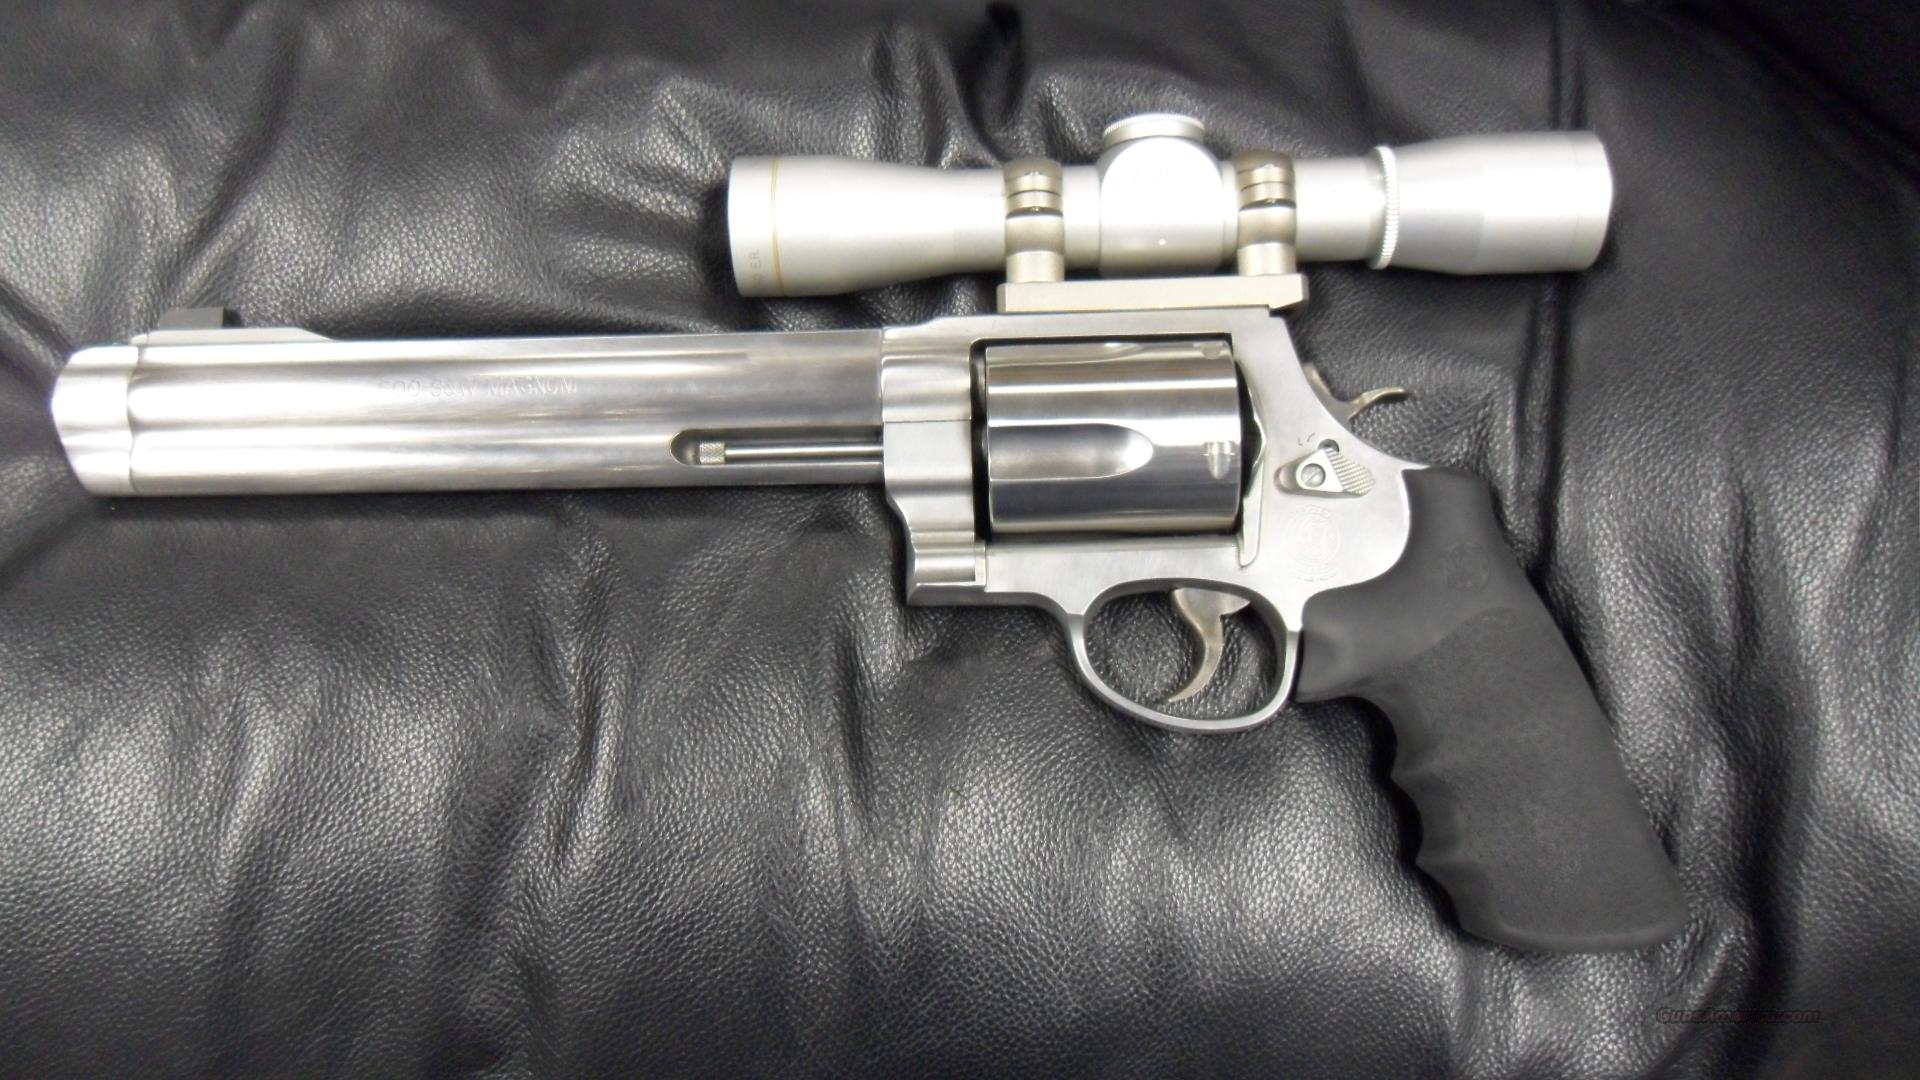 Smith & Wesson 500, 50cal.  Guns > Pistols > Smith & Wesson Revolvers > Full Frame Revolver